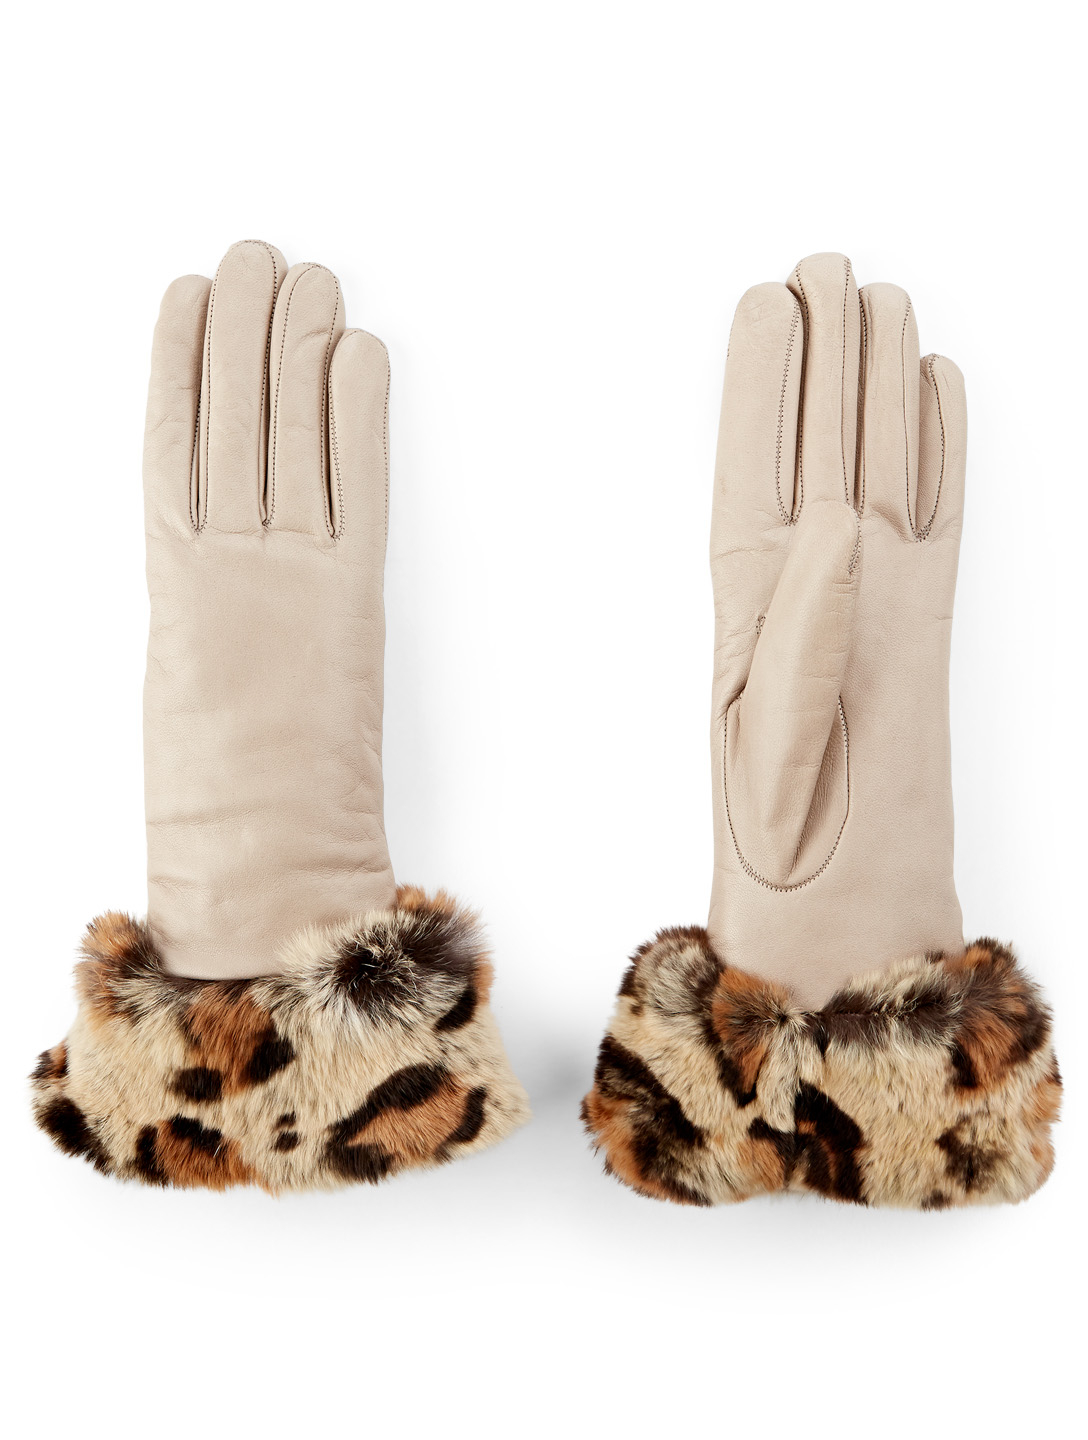 FLORIANA GLOVES Leather Gloves With Fur Cuff in Leopard Print Womens Brown